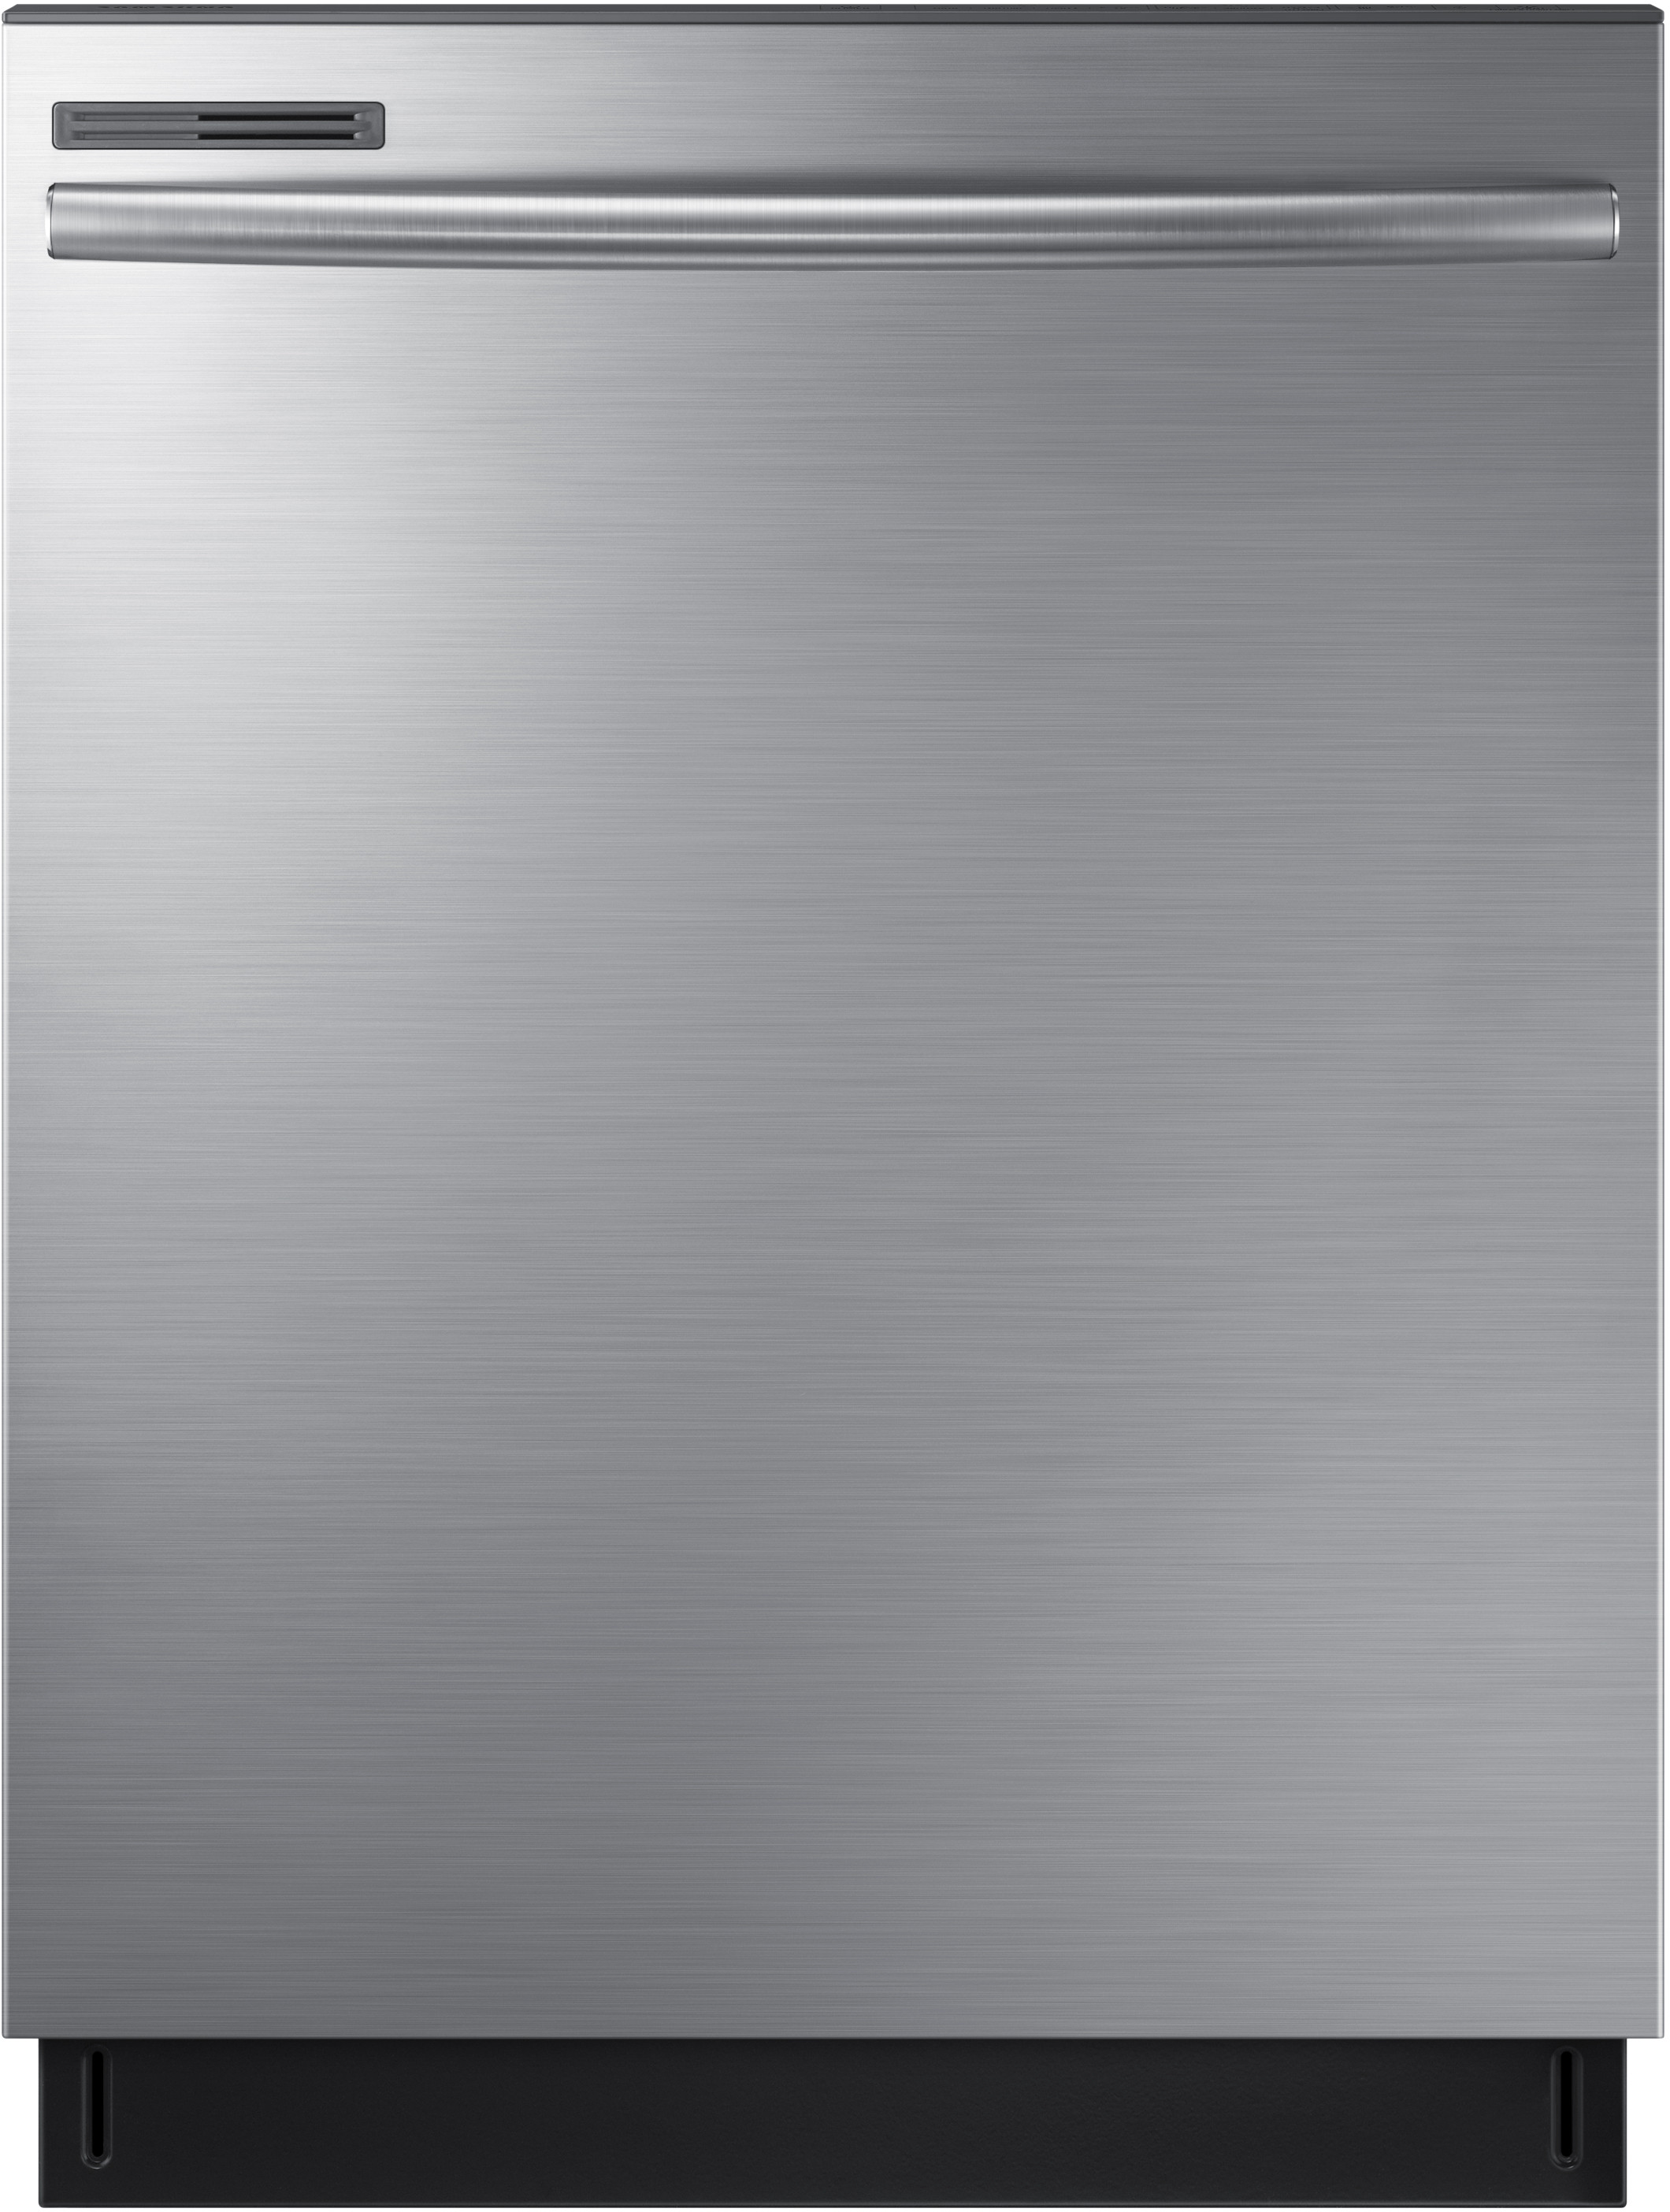 Best Dishwasher 2020 Samsung DW80M2020US Fully Integrated Dishwasher with Adjustable